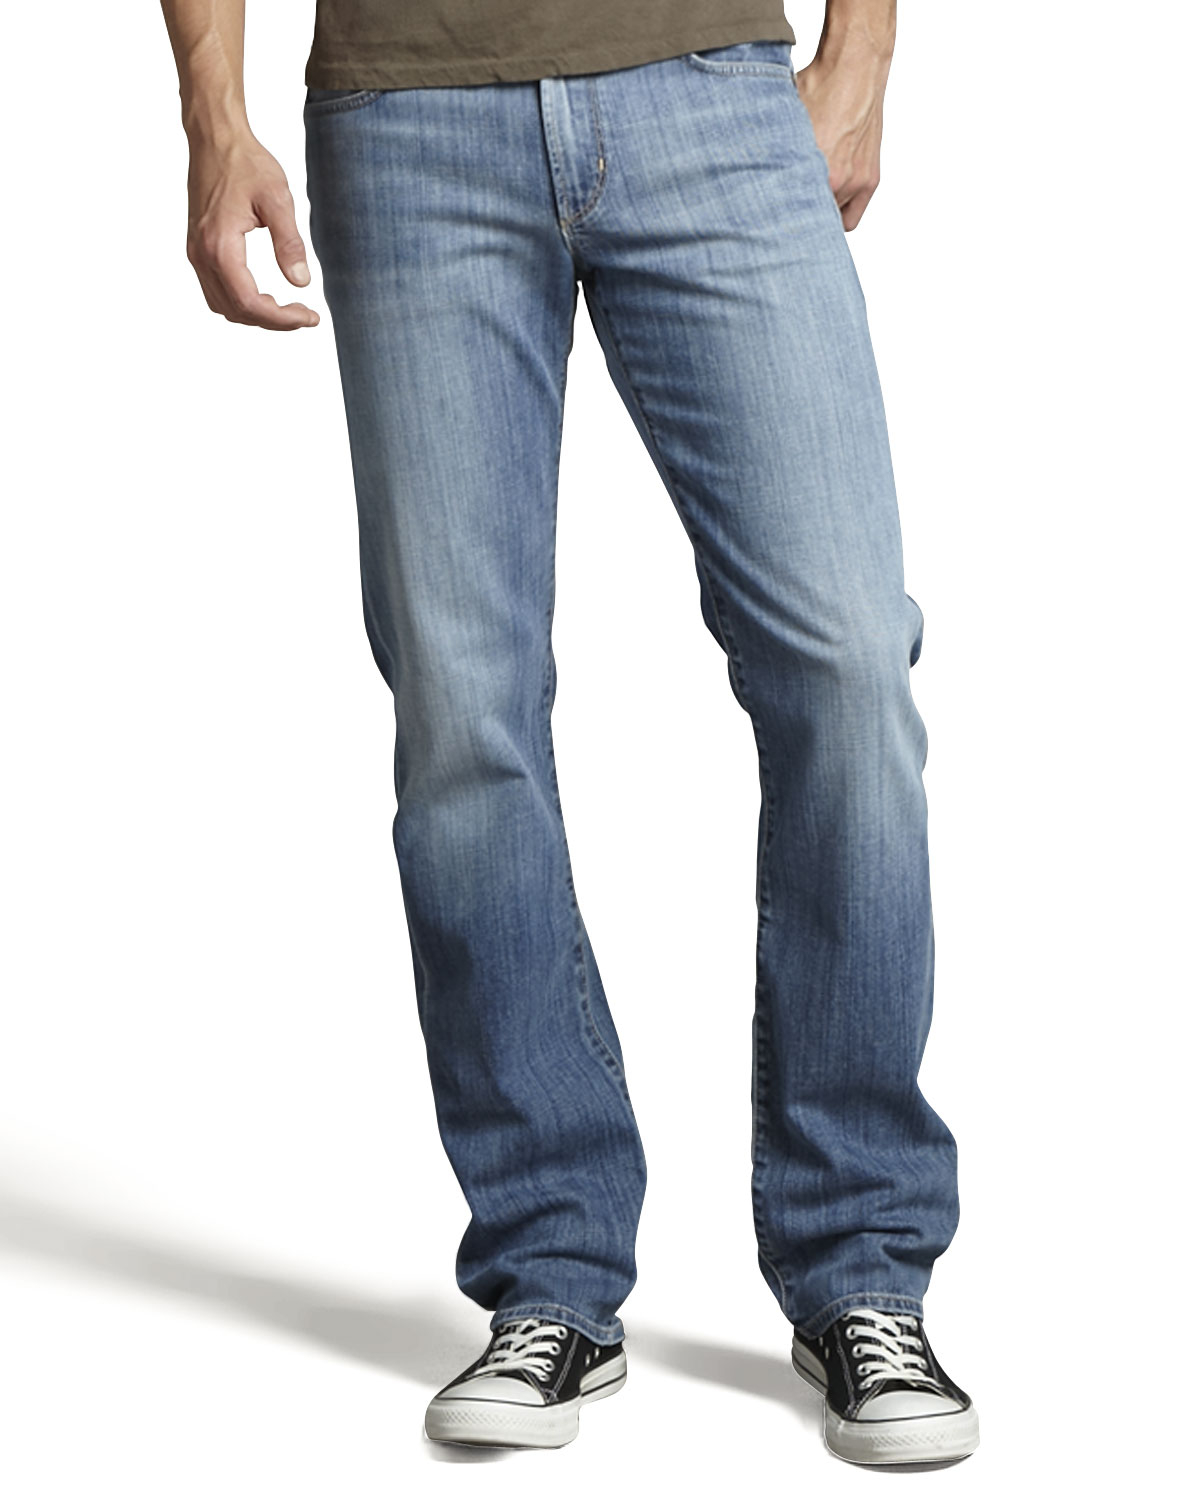 Vanity Jeans For Men : Citizens of humanity sid vanity jeans in blue for men lyst